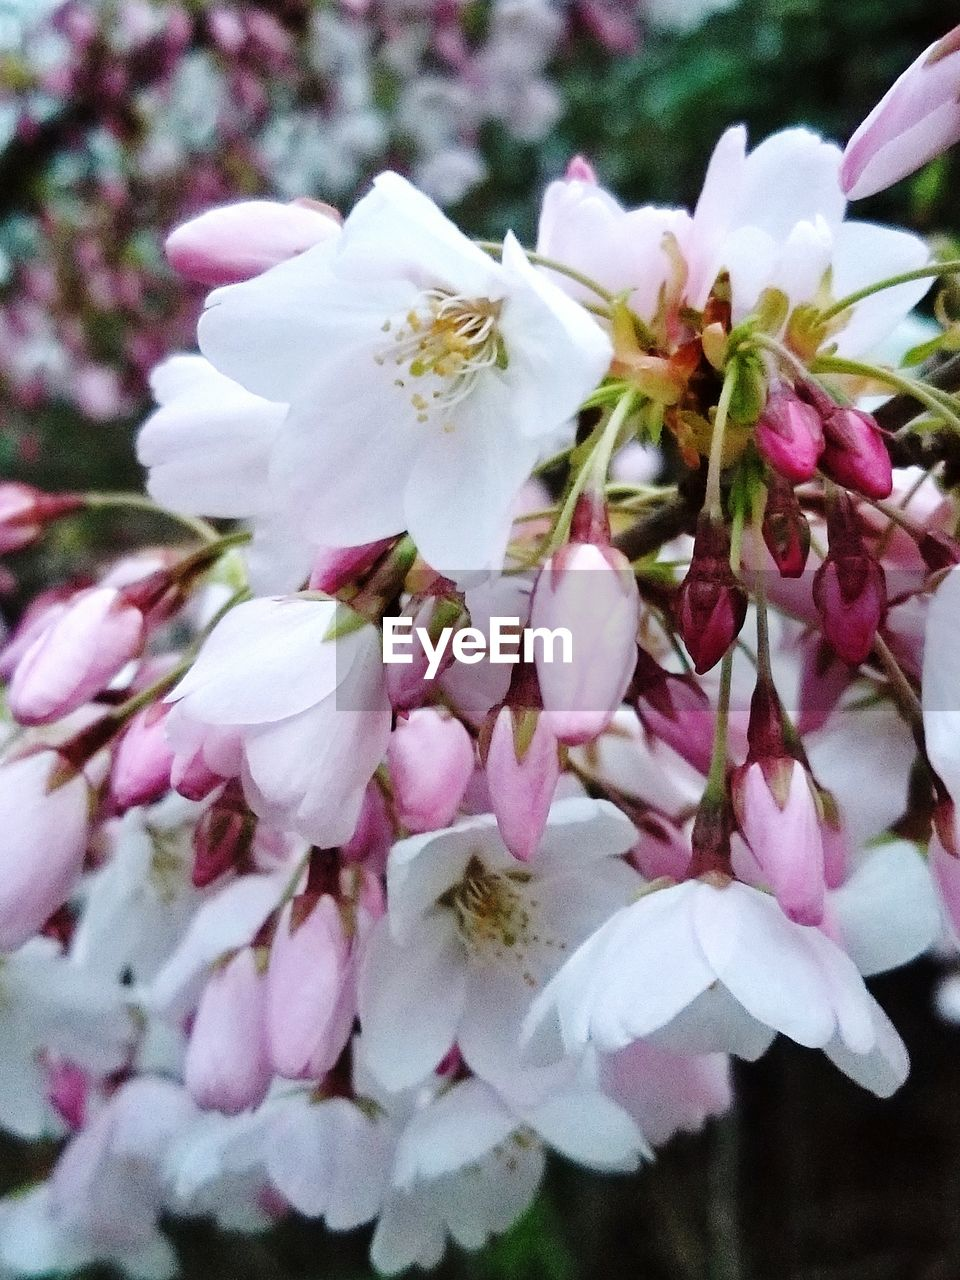 flower, flowering plant, plant, fragility, vulnerability, freshness, beauty in nature, petal, close-up, pink color, growth, inflorescence, flower head, no people, blossom, nature, springtime, day, focus on foreground, outdoors, pollen, bunch of flowers, spring, cherry blossom